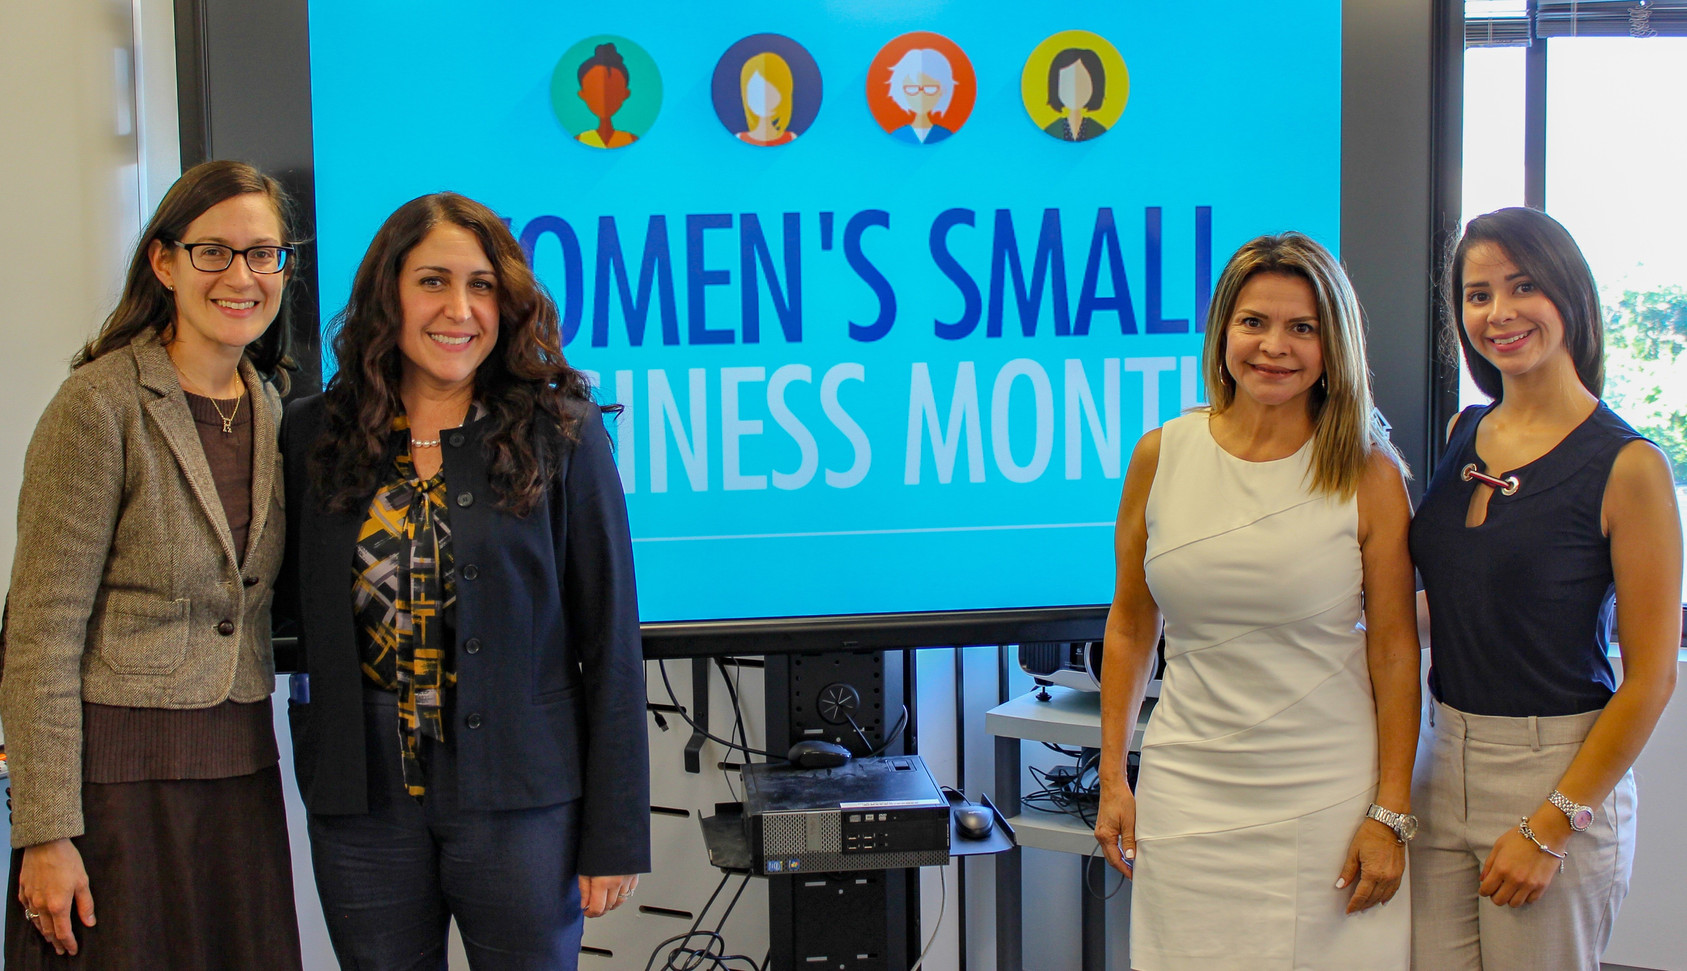 Macan Deve participated in the NYCSBS Women Small Business Month event.